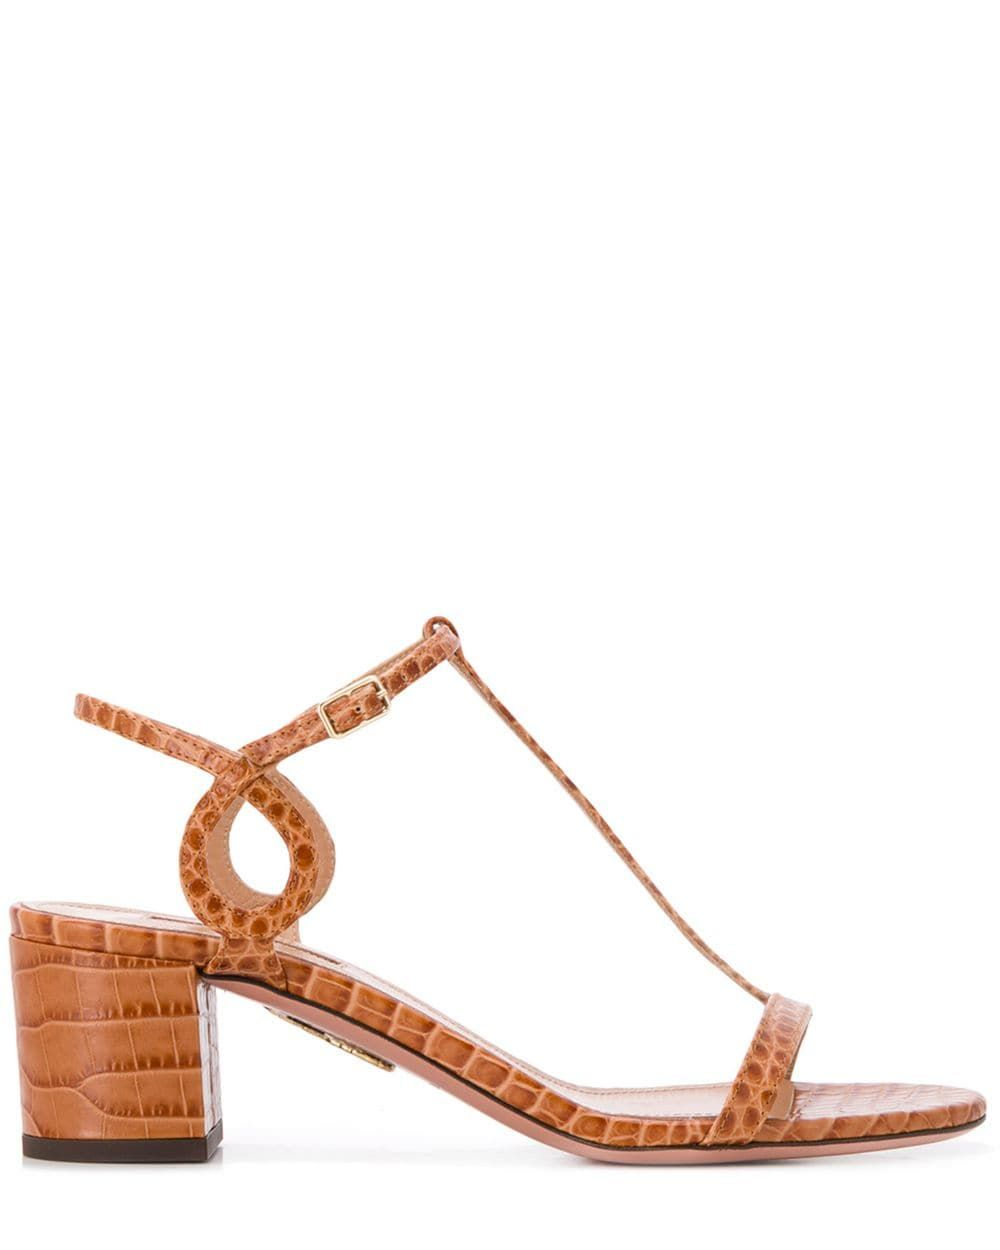 Block Heel Sandals Aquazzura farfetch.com $502.86 SHOP NOW The ultimate wear-everywhere heeled sandals, updated with swirly straps for a modern feel.